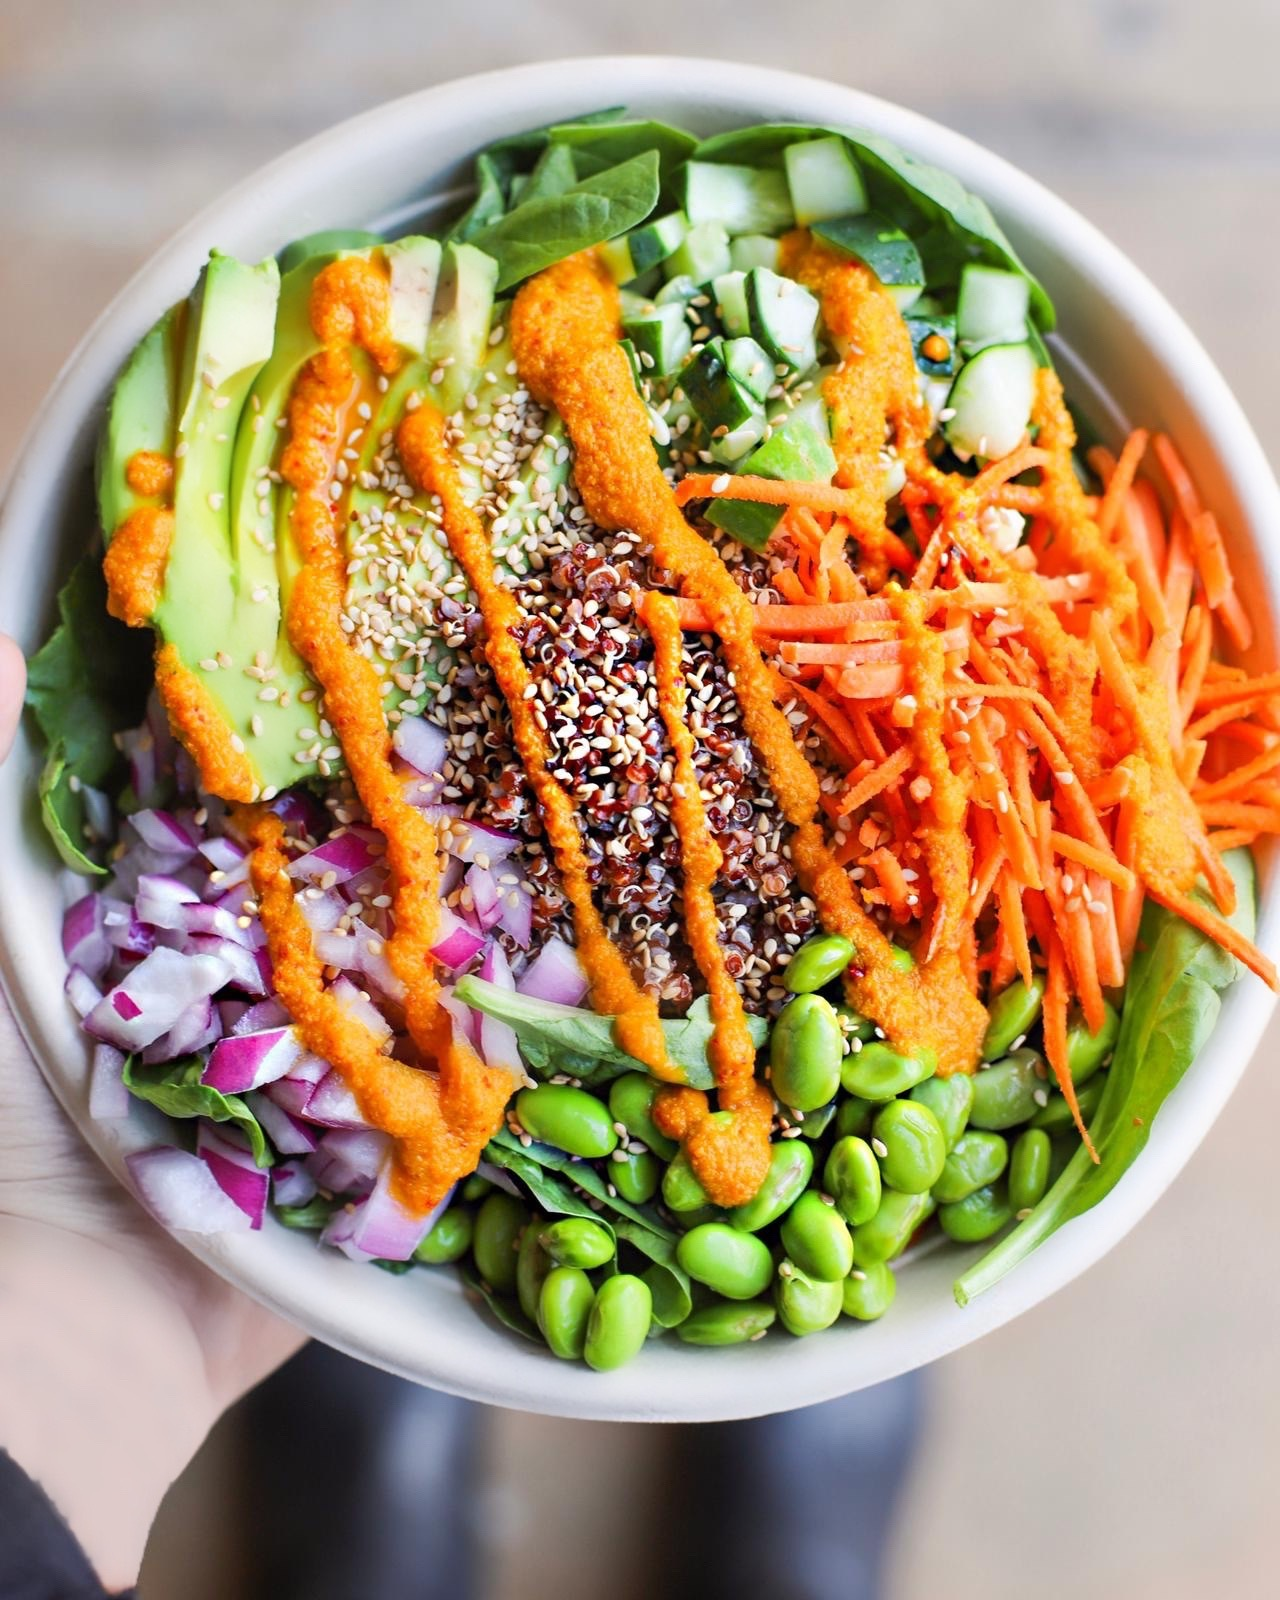 A salad bowl with carrots, avocado, edamame, chopped onion, red quinoa, and cucumbers is topped with an orange colored dressing.